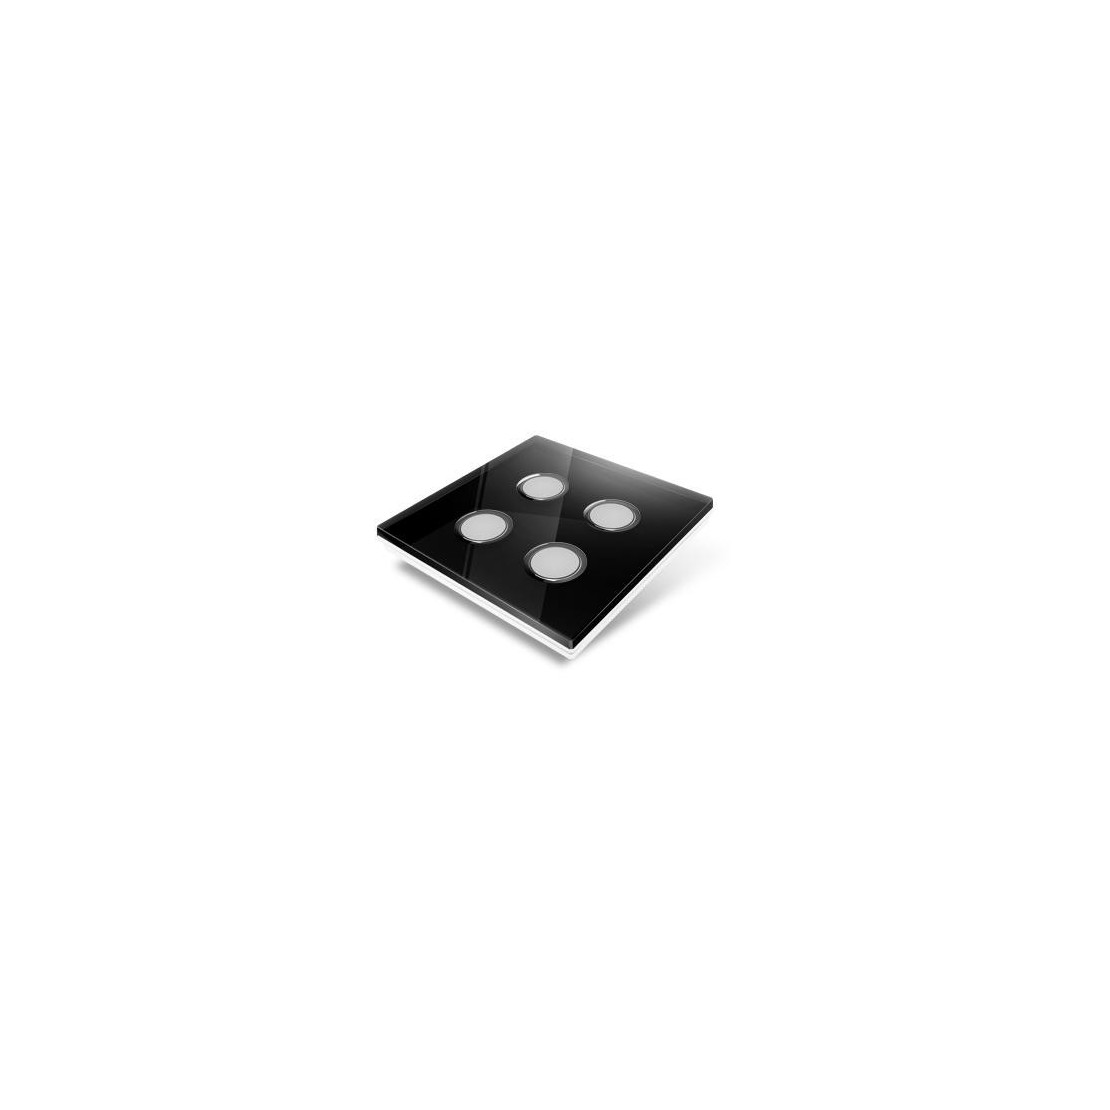 Switchplate for Edisio - black plastic